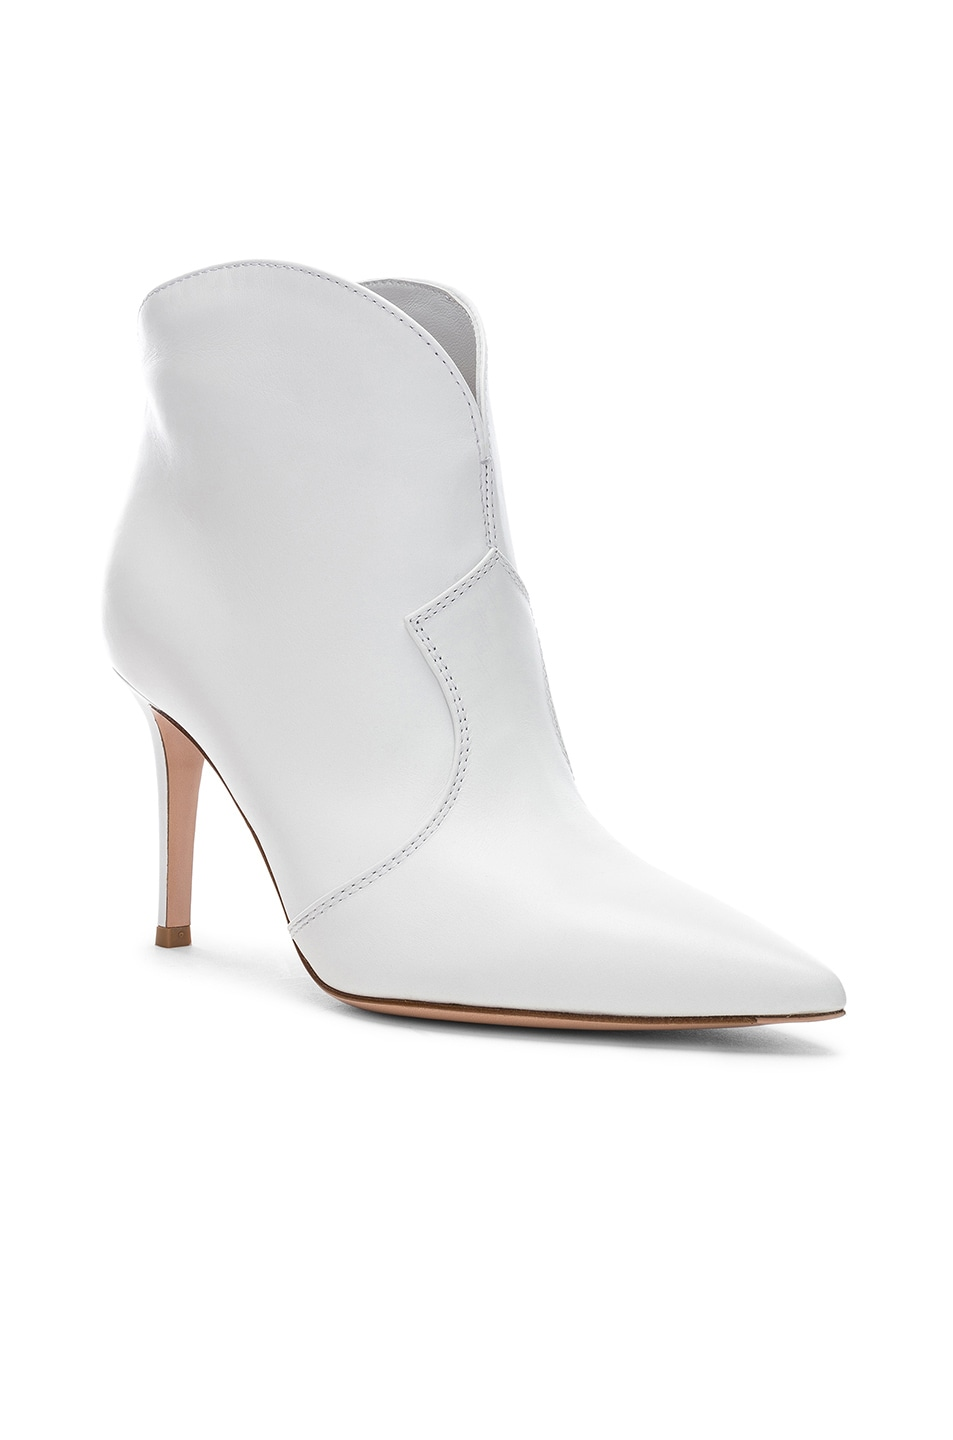 Image 2 of Gianvito Rossi Mable Mid Booties in White